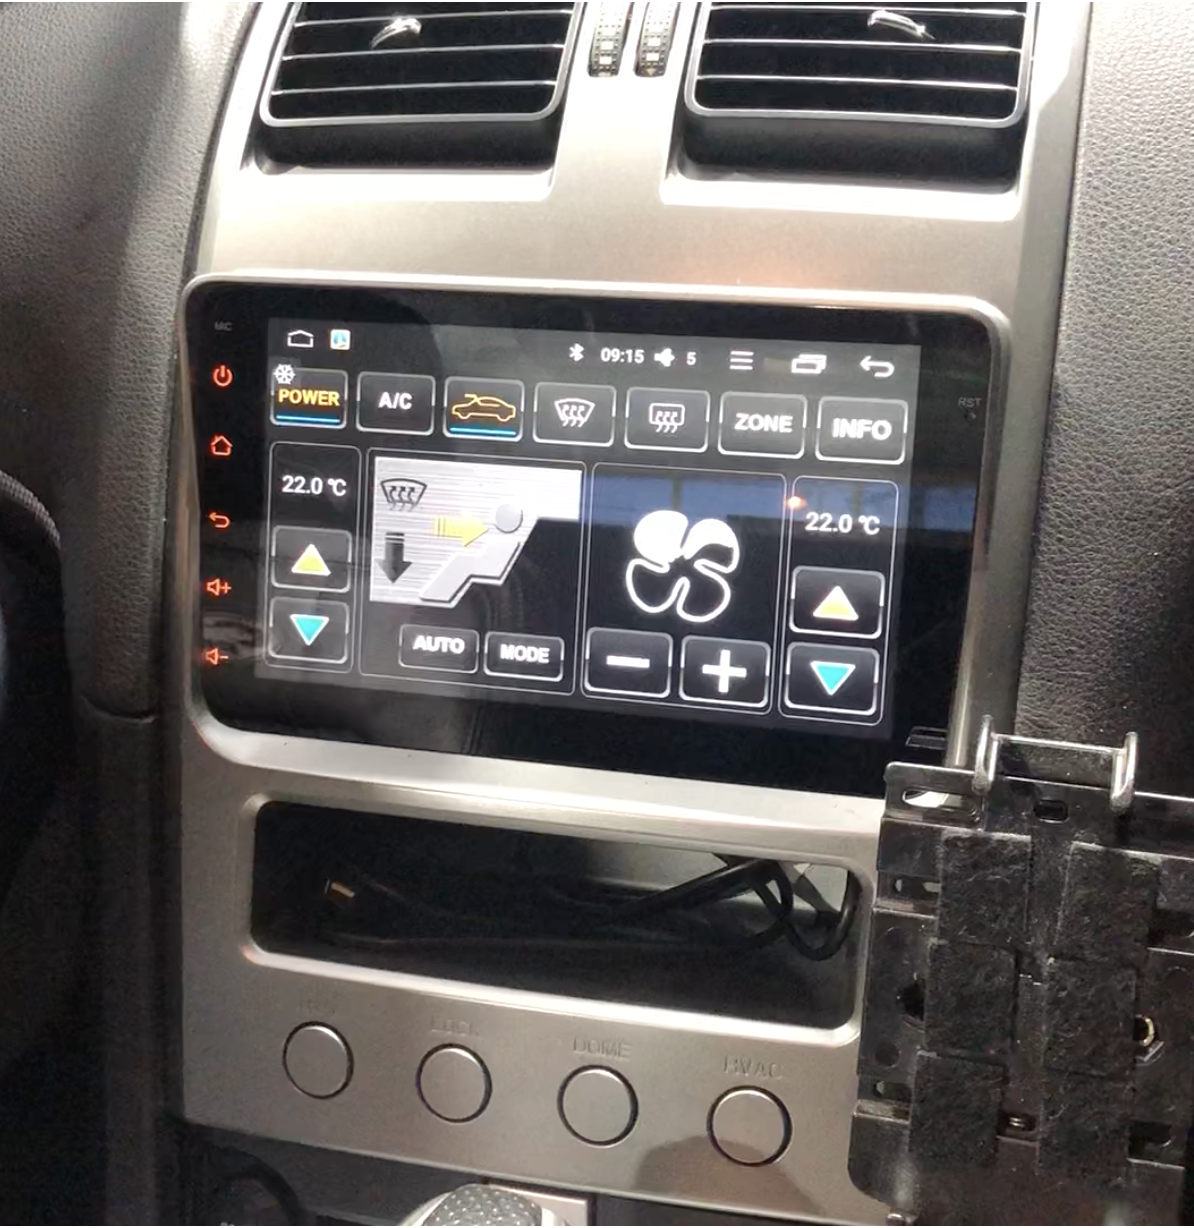 2003 Ford Radio Cd Player